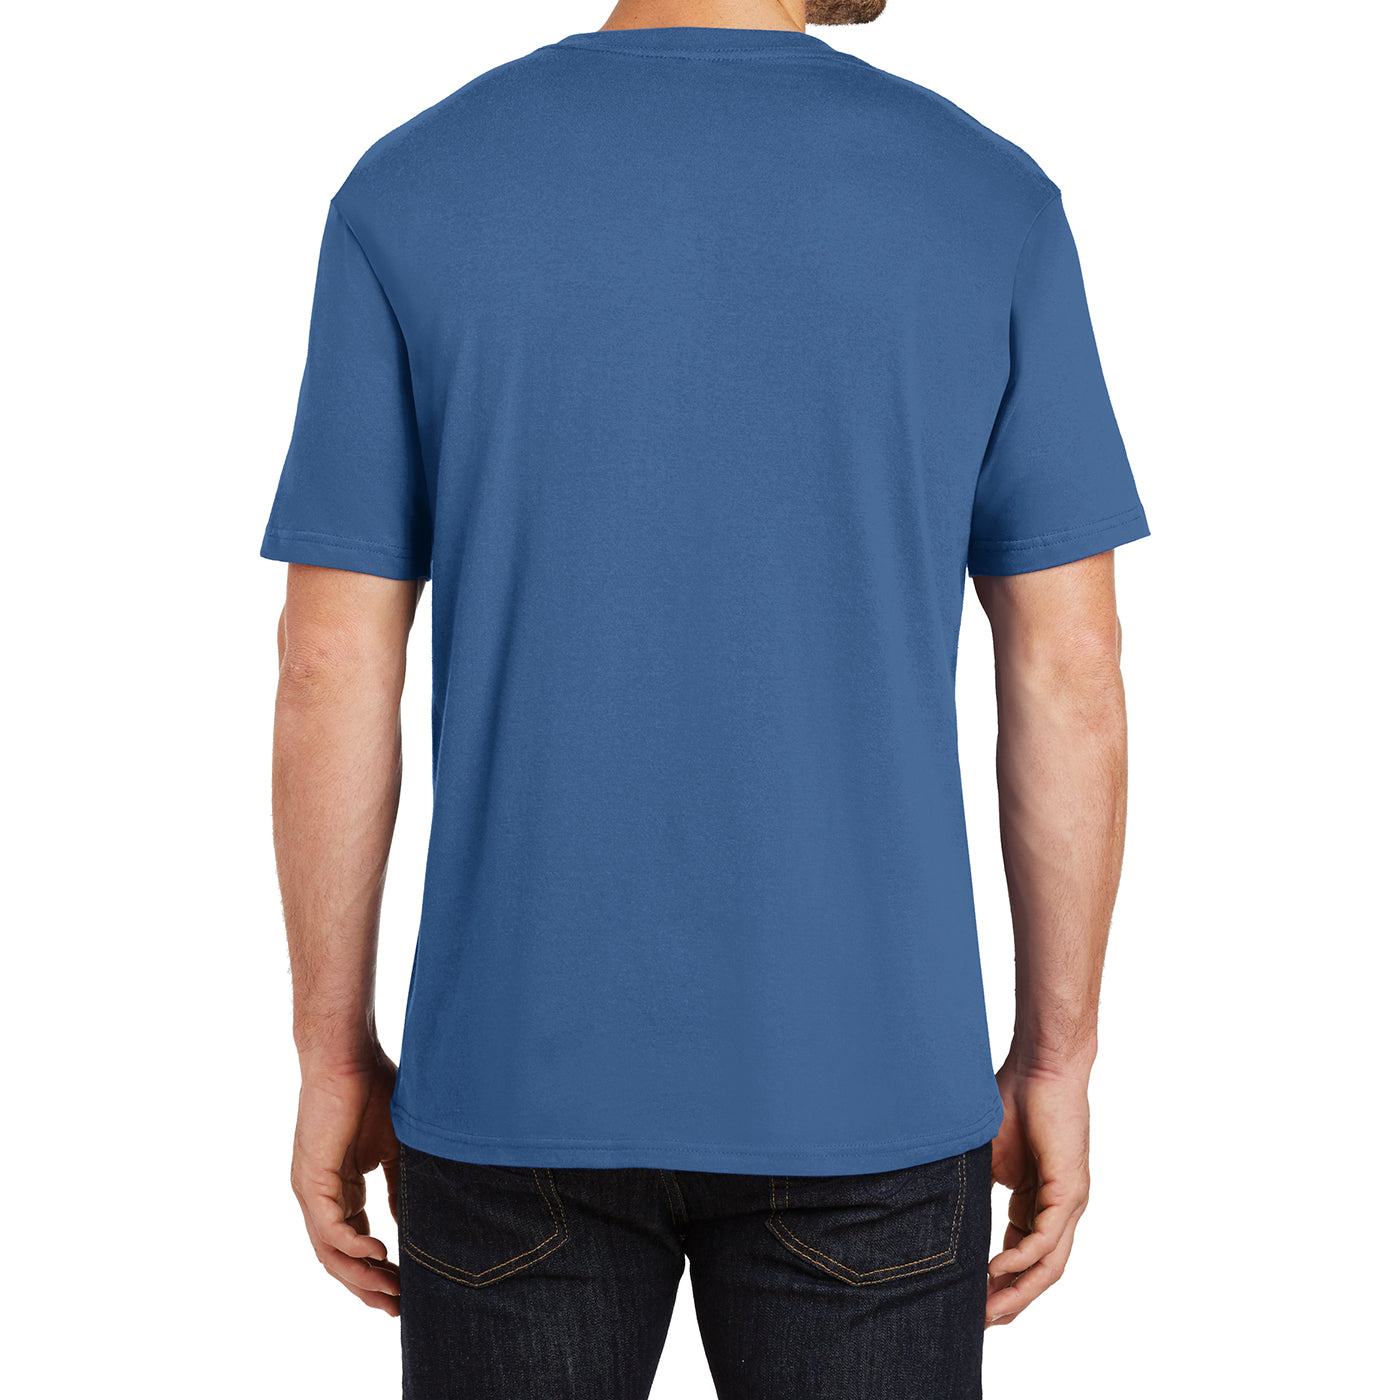 Mens Perfect Weight Crew Tee - Maritime Blue - Back